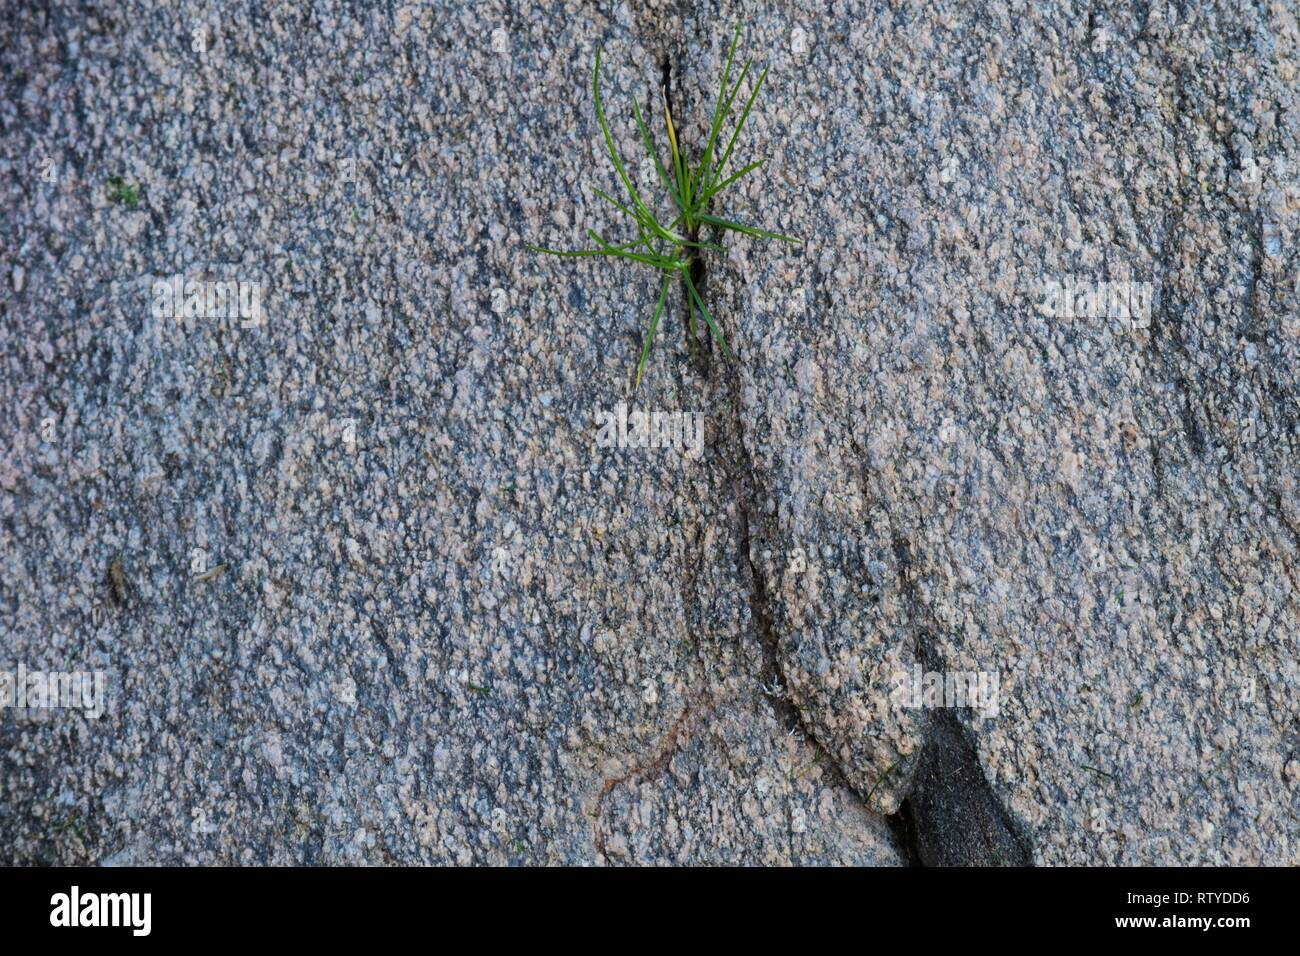 Small tuft of grass sprouts from a large rock - Stock Image